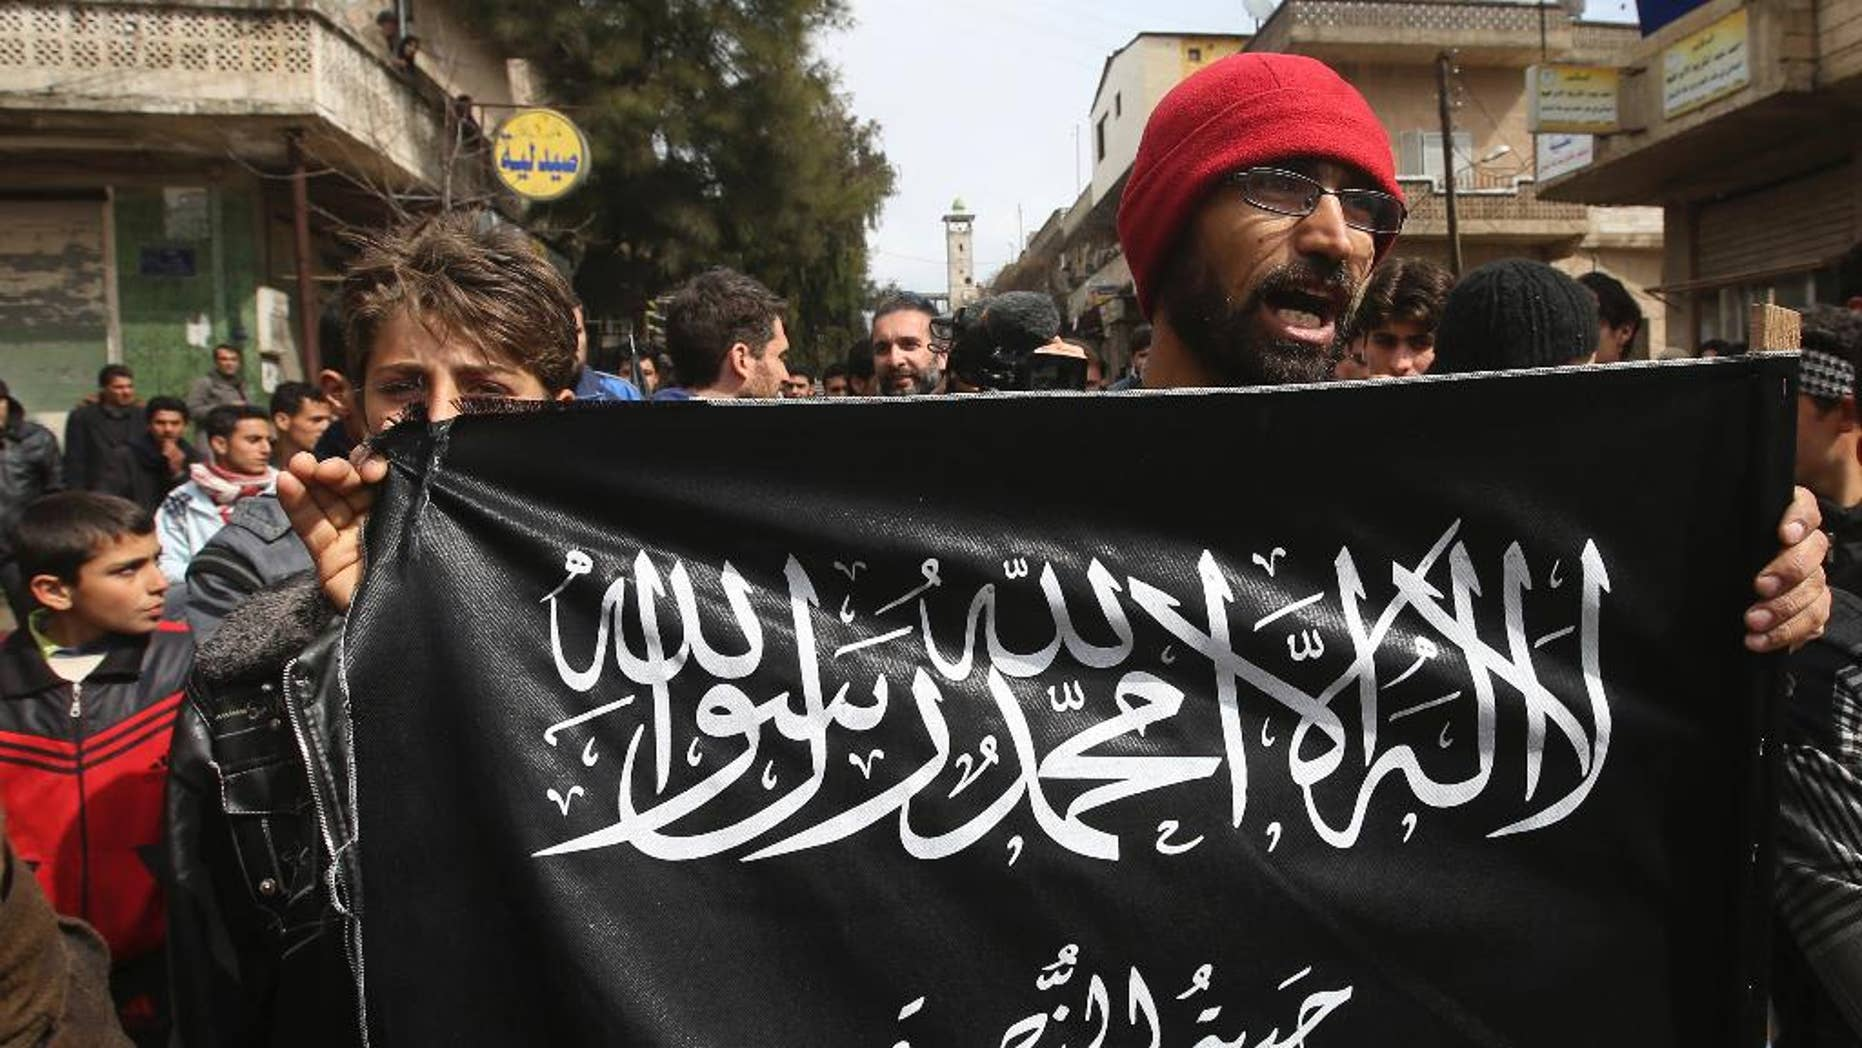 FILE- In this March 1, 2013 file photo, anti-Syrian President Bashar Assad protesters hold the Jabhat al-Nusra flag, as they shout slogans during a demonstration, at Kafranbel town, in Idlib province, northern Syria.